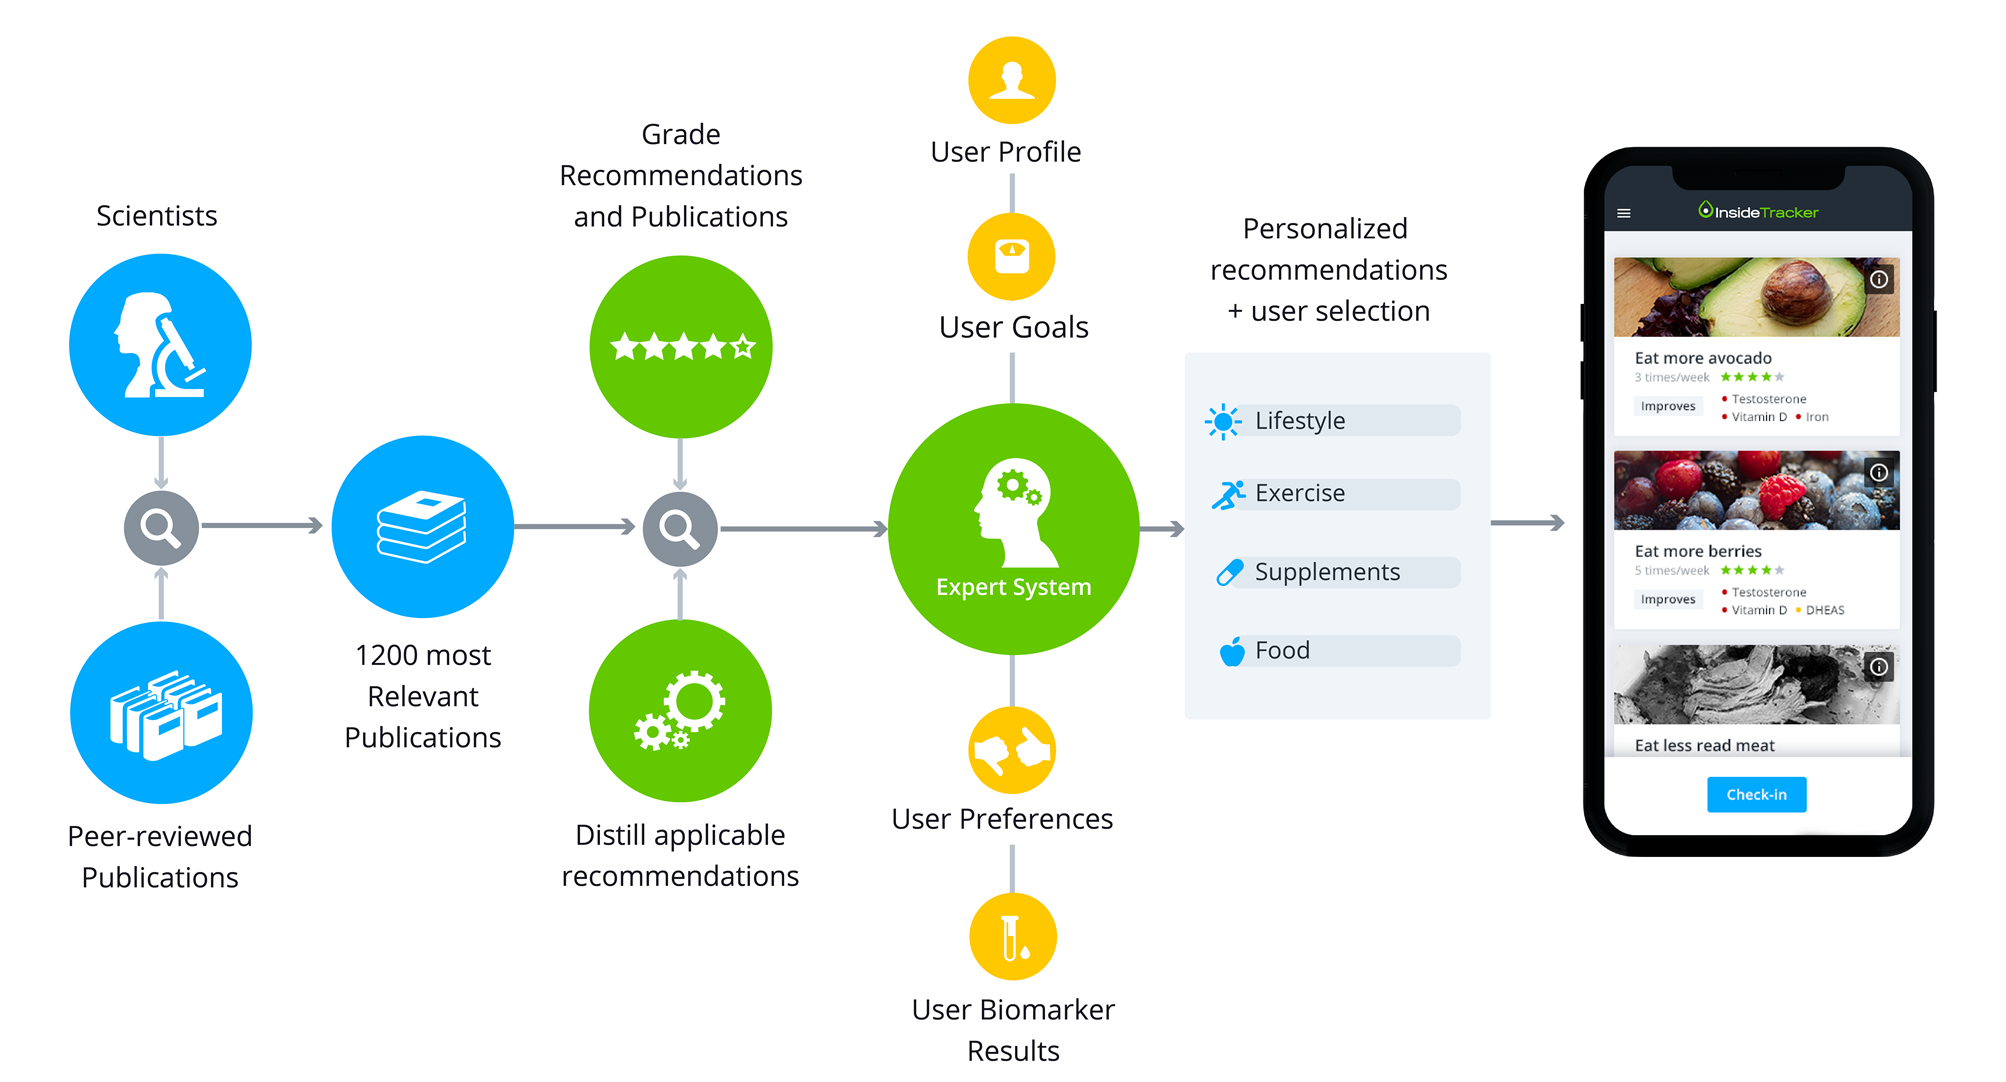 Graphical description of the InsideTracker algorithm and platform